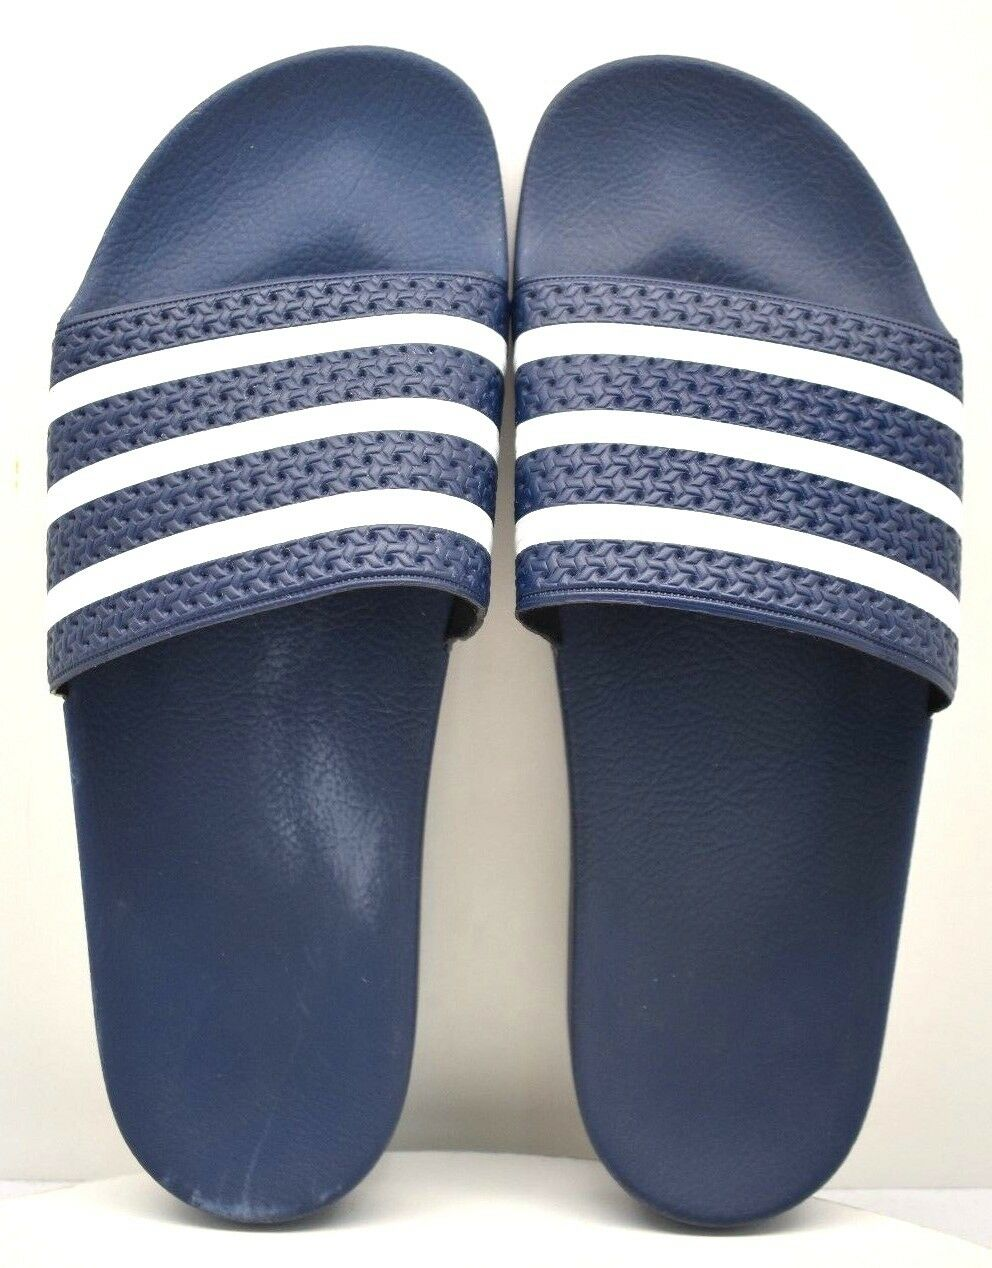 Adidas Adilette Slide 288022 Navy / - White US Size 11 - / FREE SHIPPING - BRAND NEW 3beee6